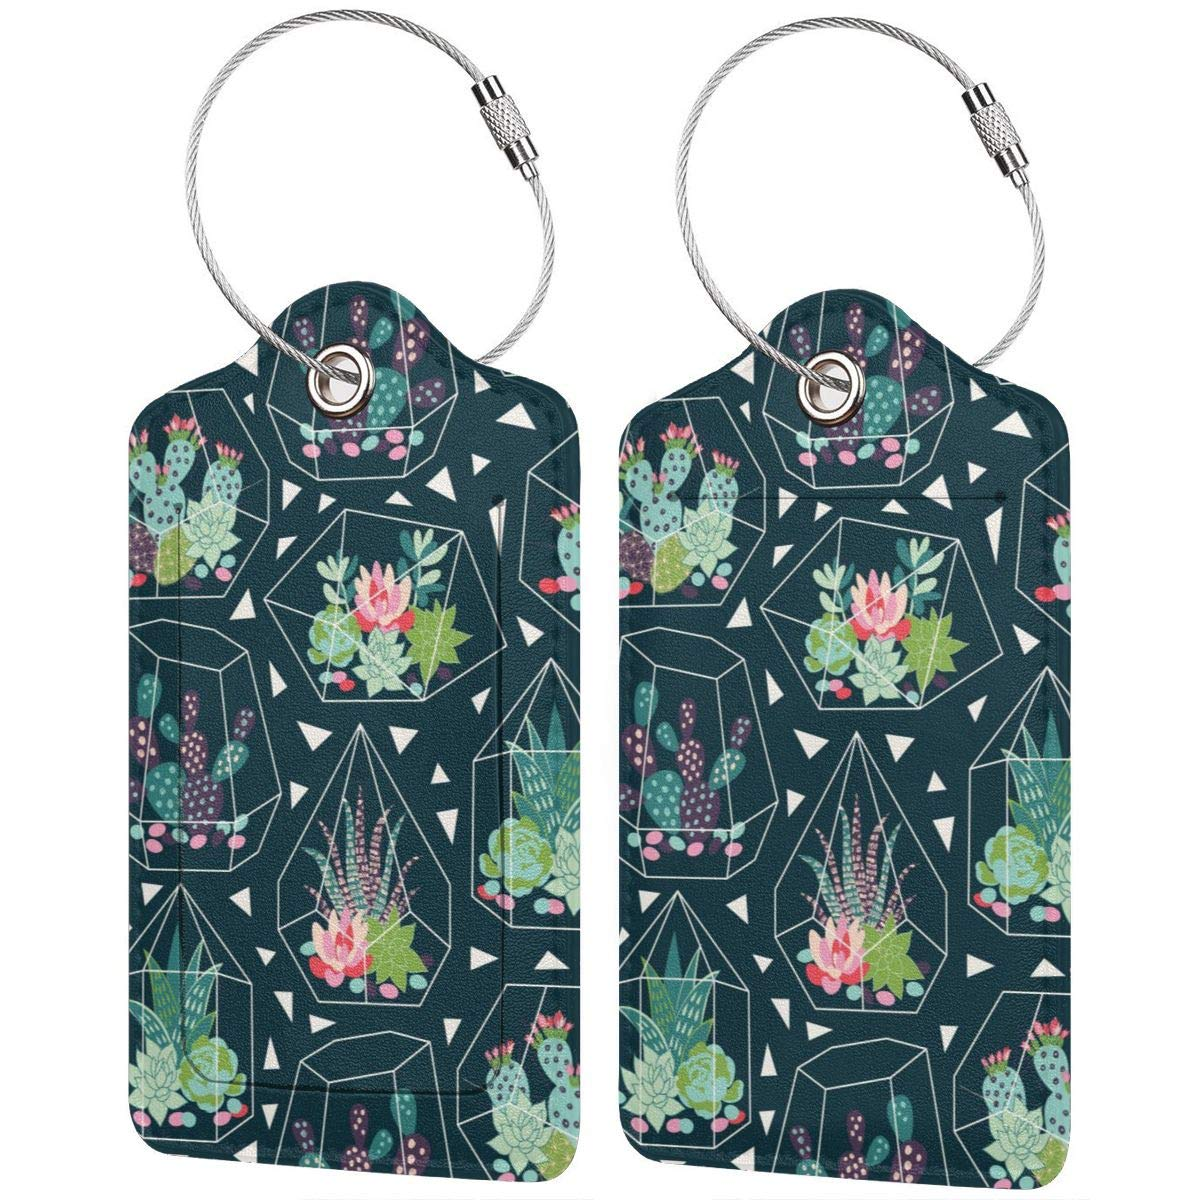 GoldK Succulents and Cactuses Leather Luggage Tags Baggage Bag Instrument Tag Travel Labels Accessories with Privacy Cover